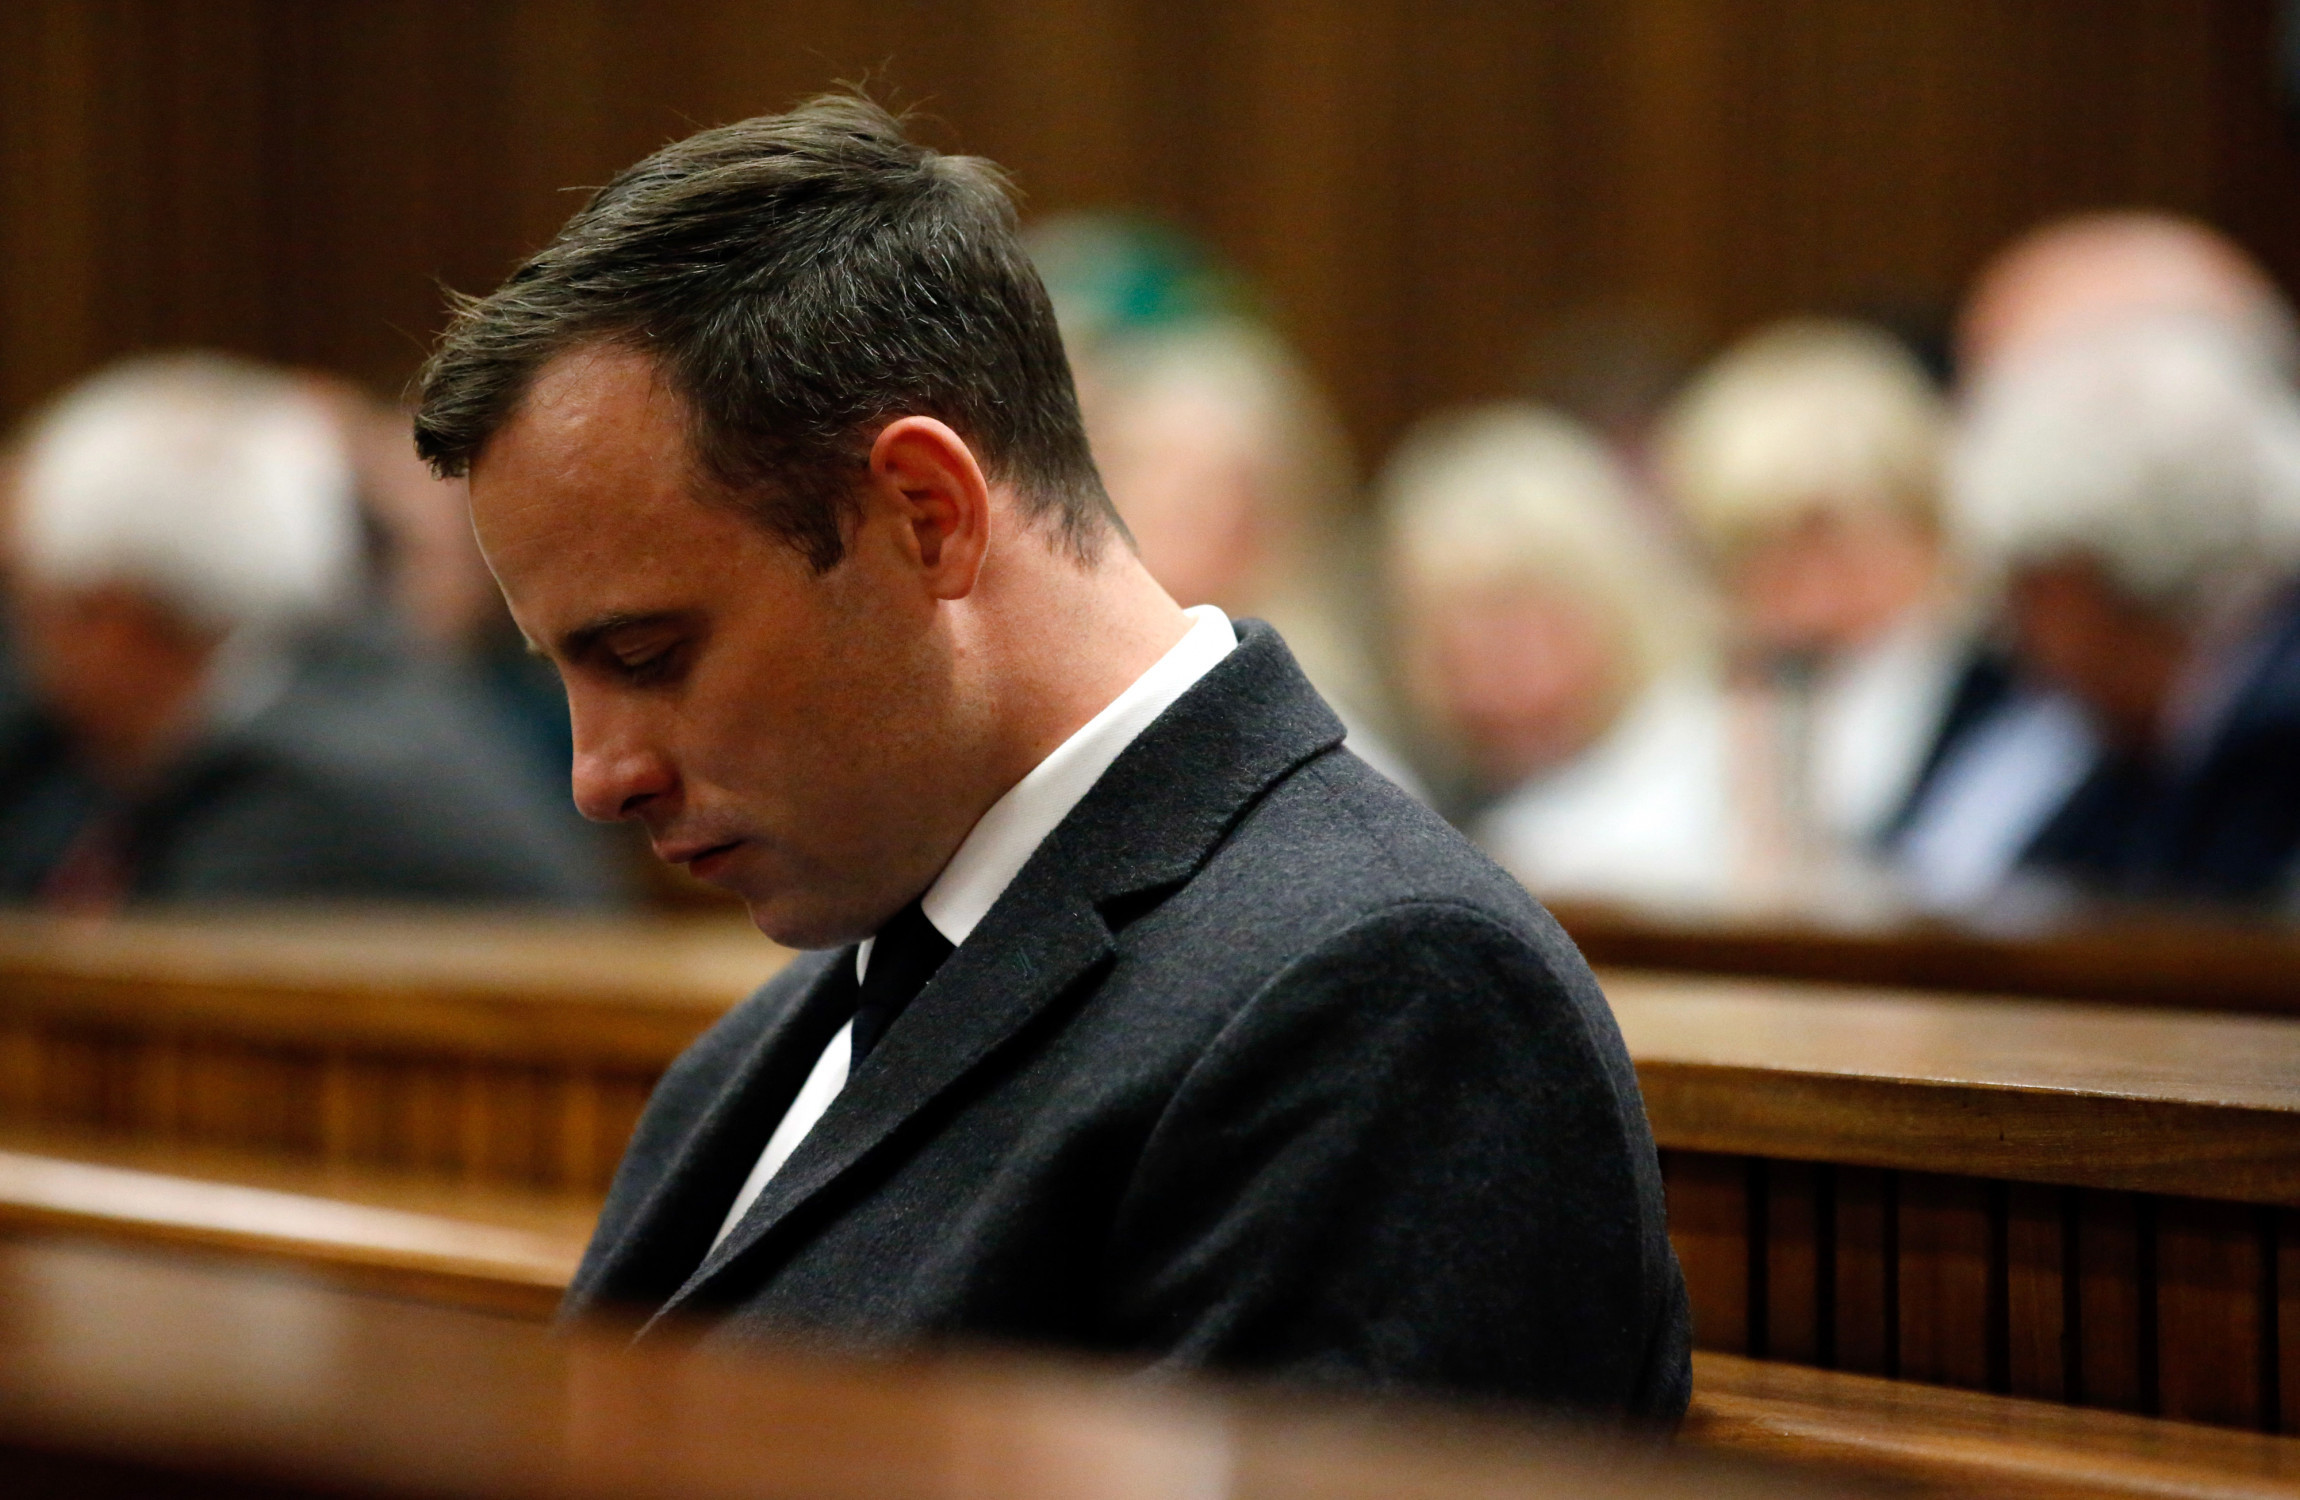 Oscar Pistorius' prison sentence increased